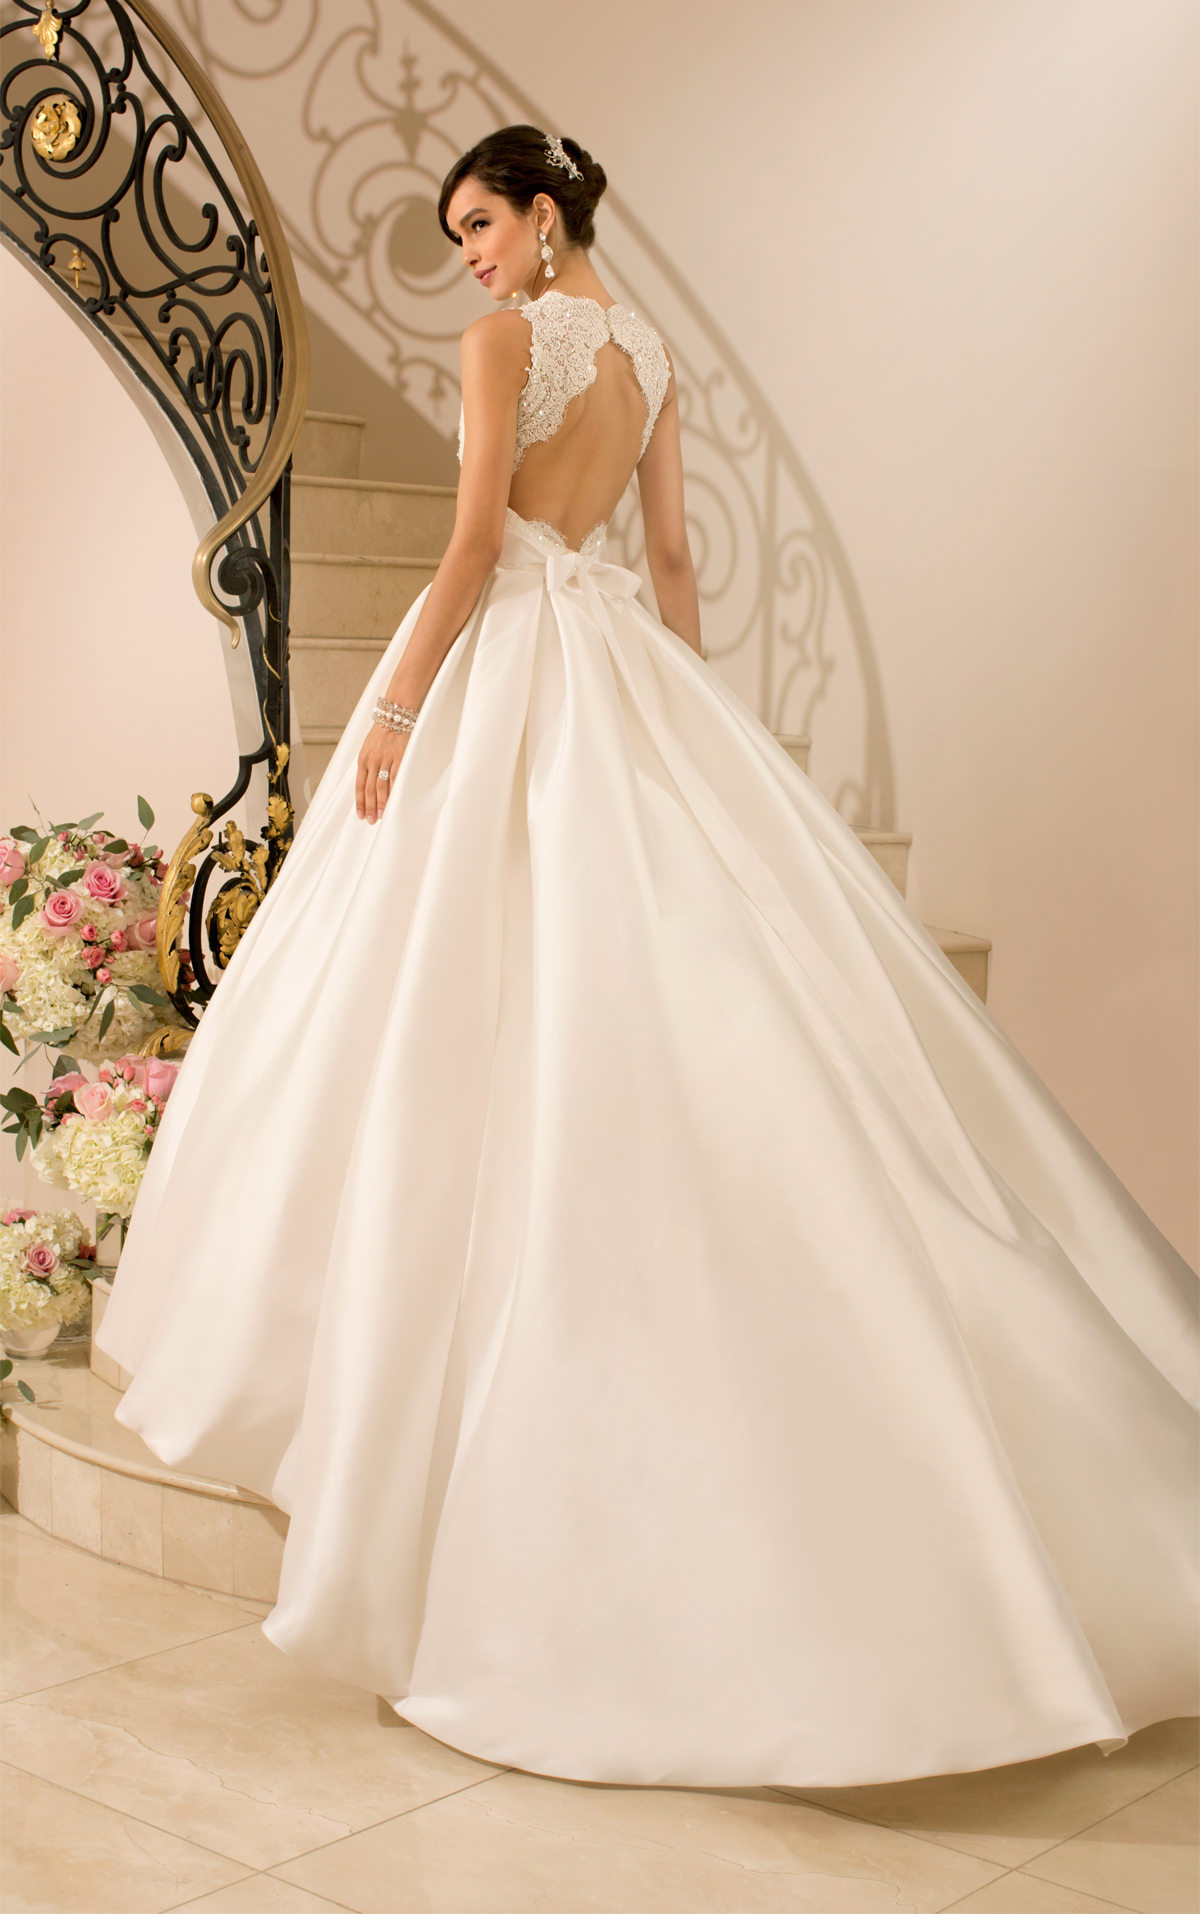 When to buy wedding dress